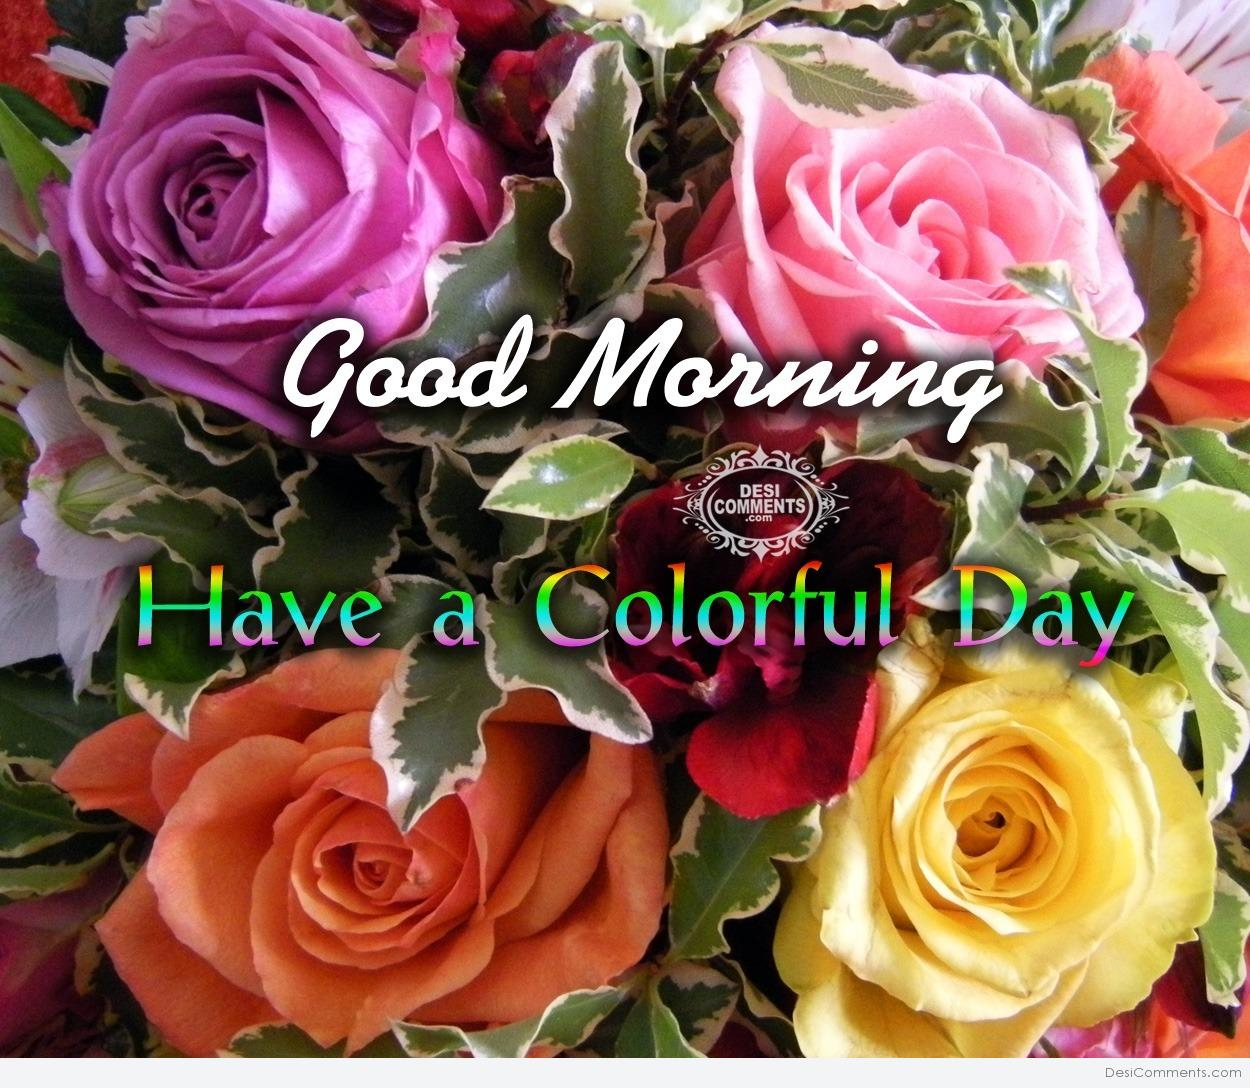 Download Good Night Wallpapers With Quotes Good Morning Have A Colorful Day Desicomments Com